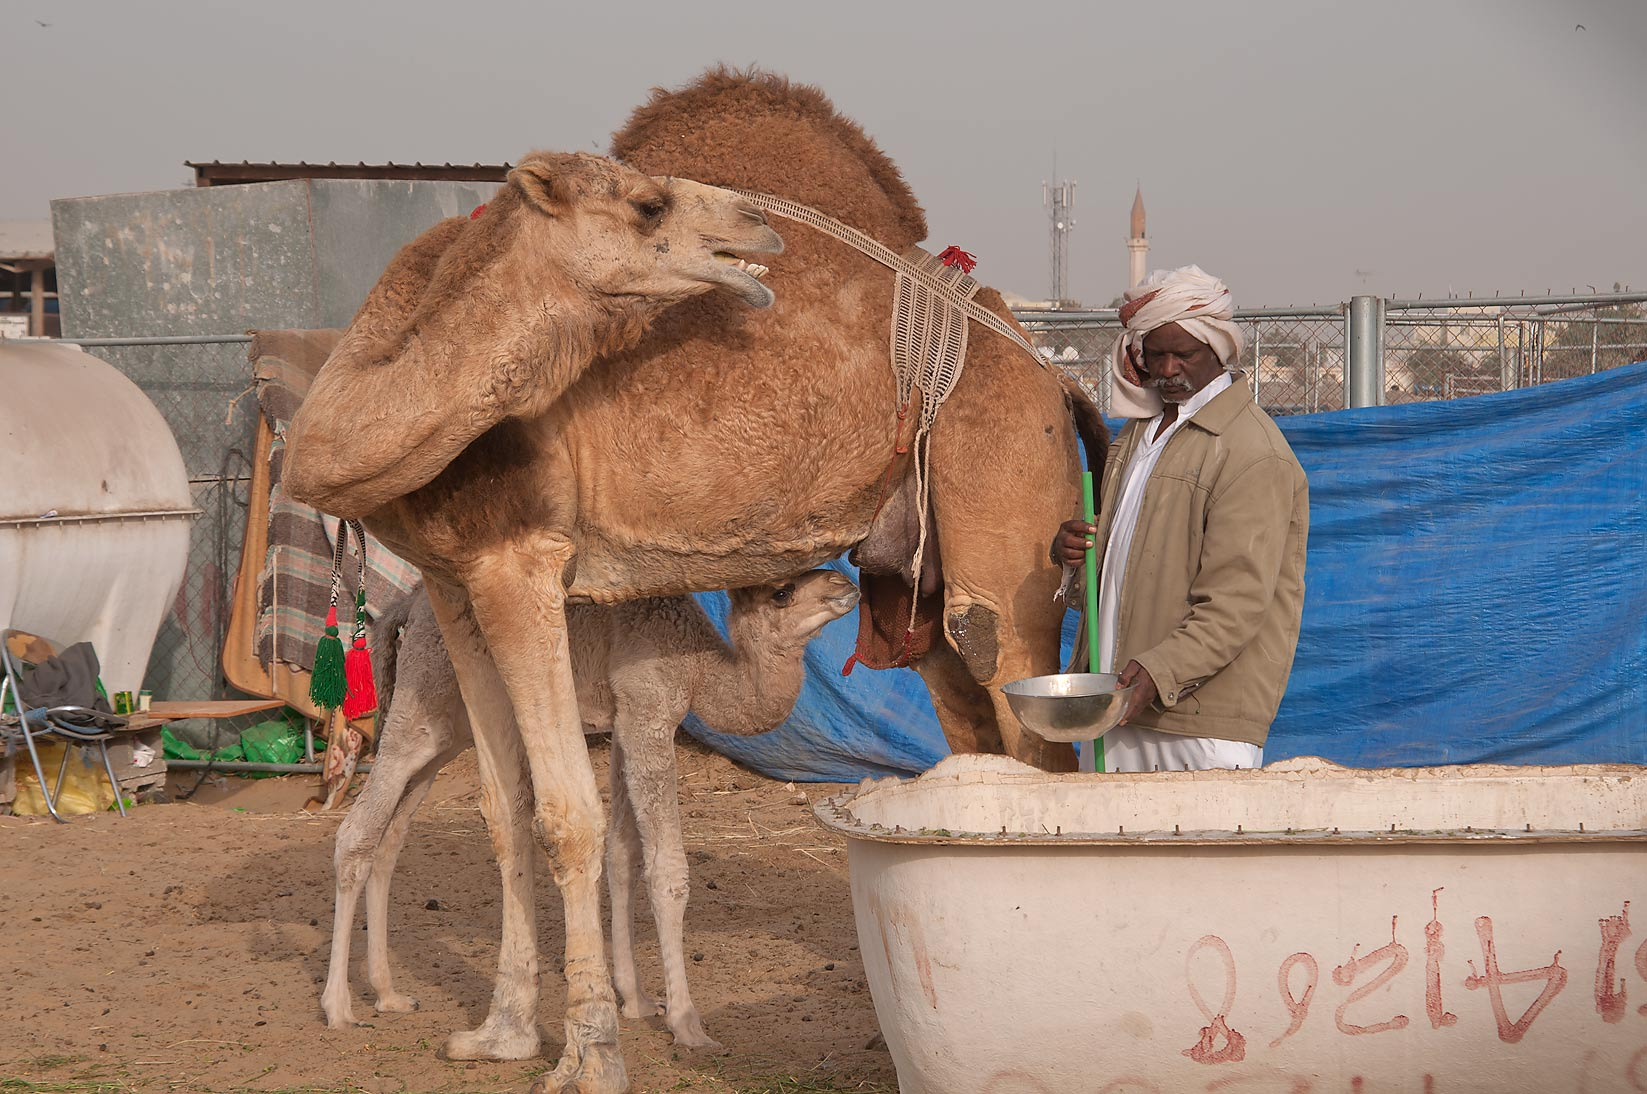 Milking a camel in Wholesale Animal Market. Doha, Qatar